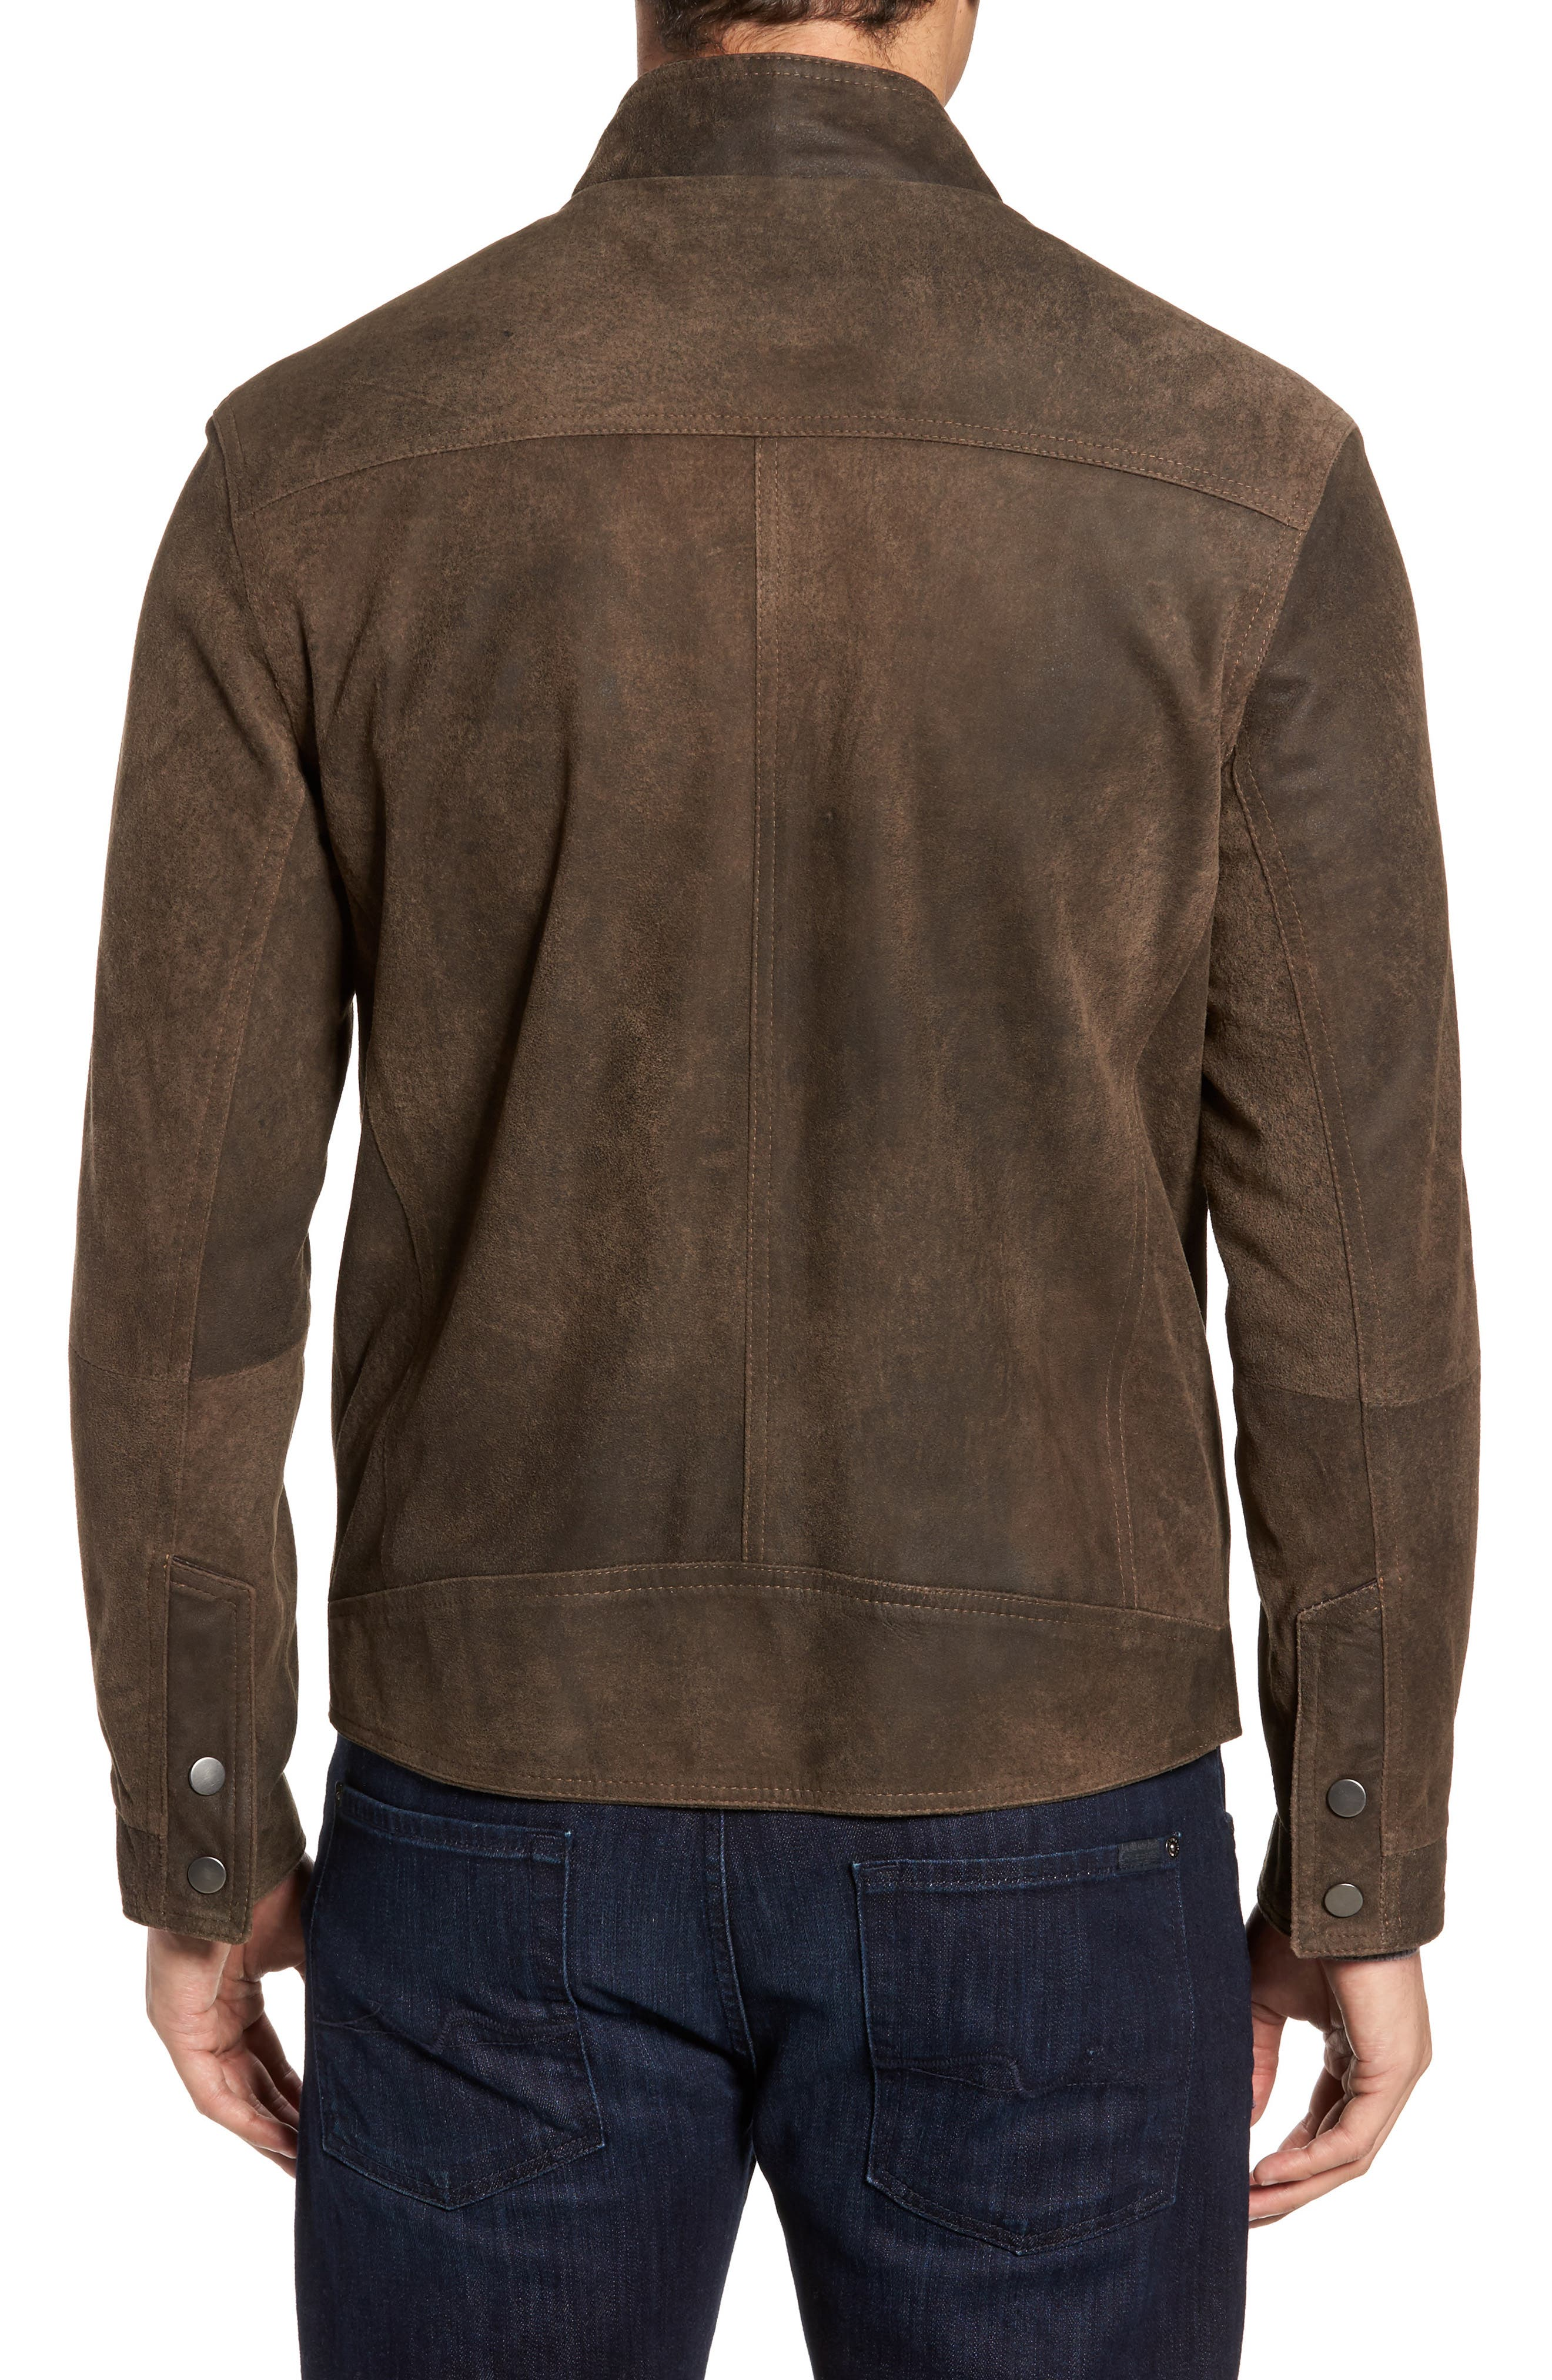 Suede Moto Jacket,                             Alternate thumbnail 2, color,                             Frontier/ Cocoa